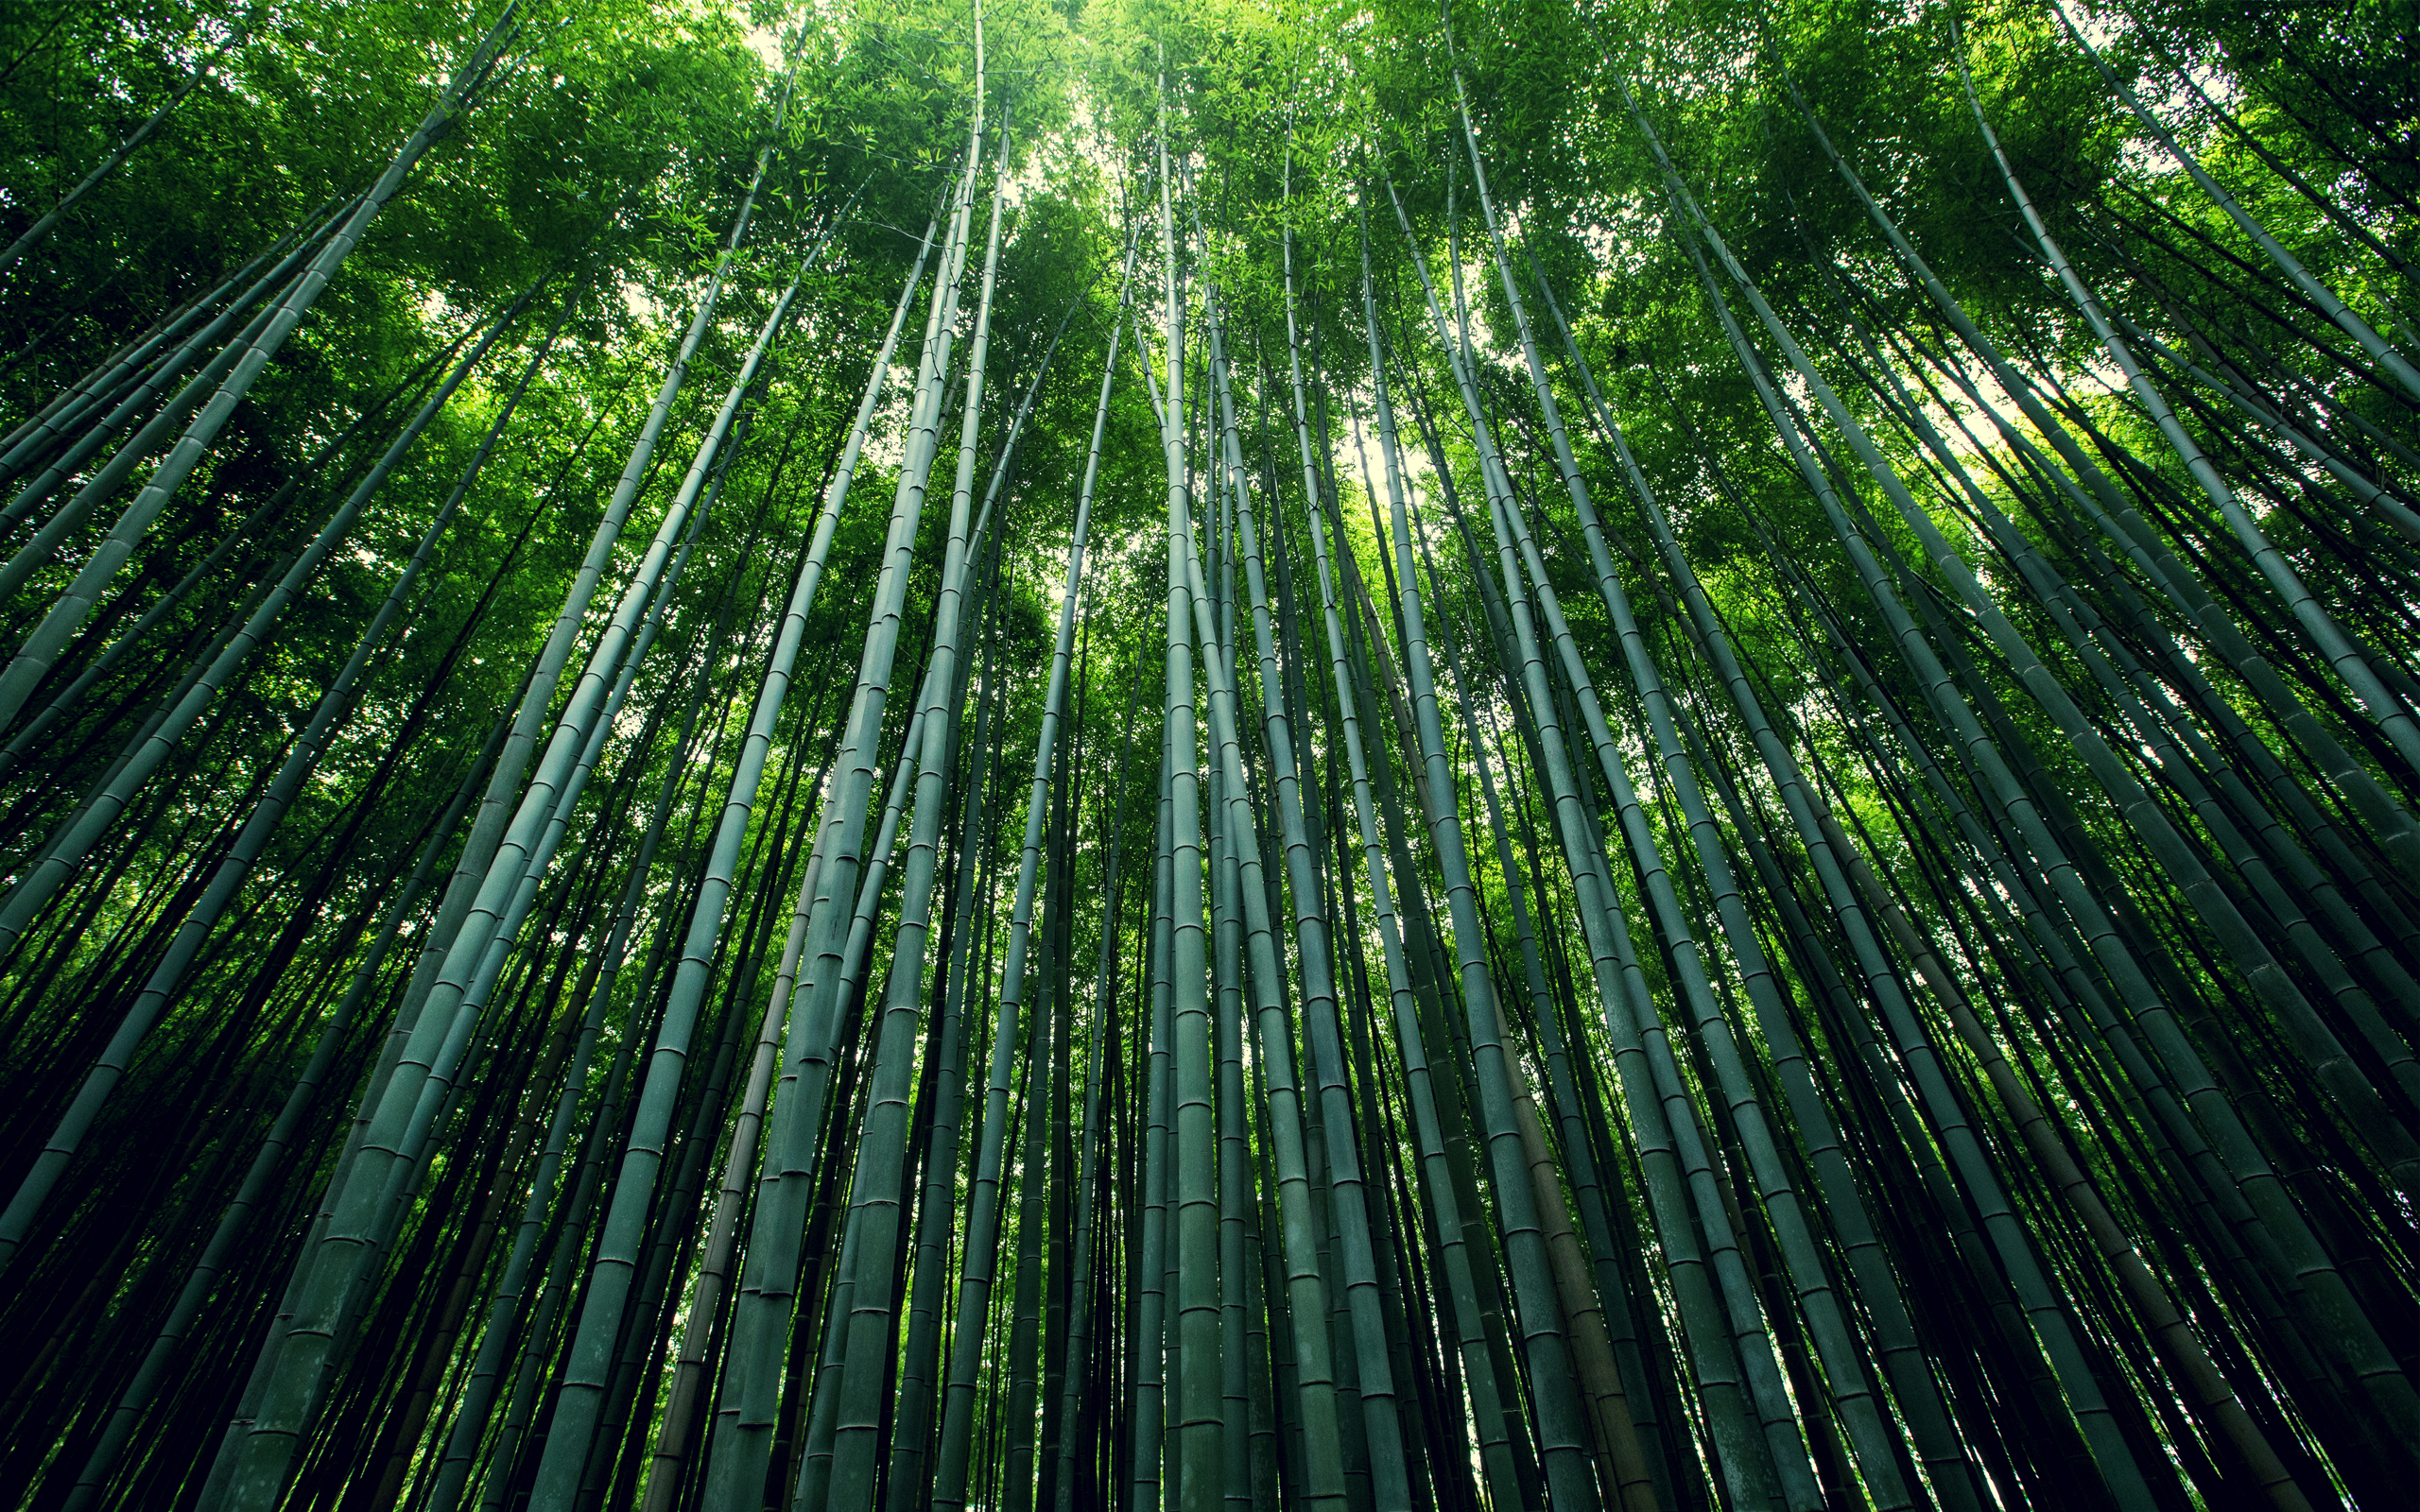 bamboo forest wallpapers hd